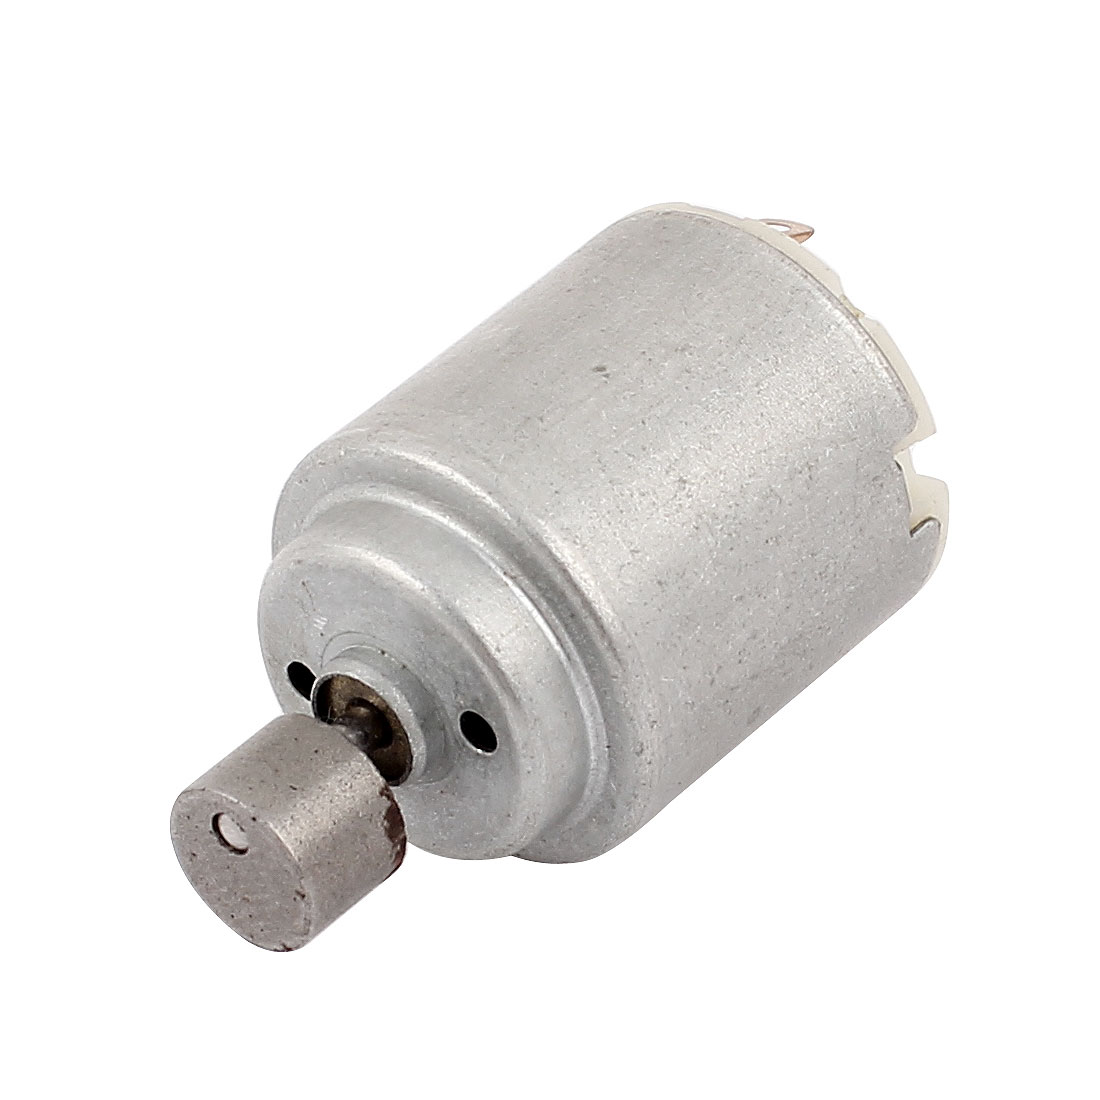 1.5-6V DC 16500RPM 2 Terminals Connector 2mm Shaft Dia Mini Motor Replacement